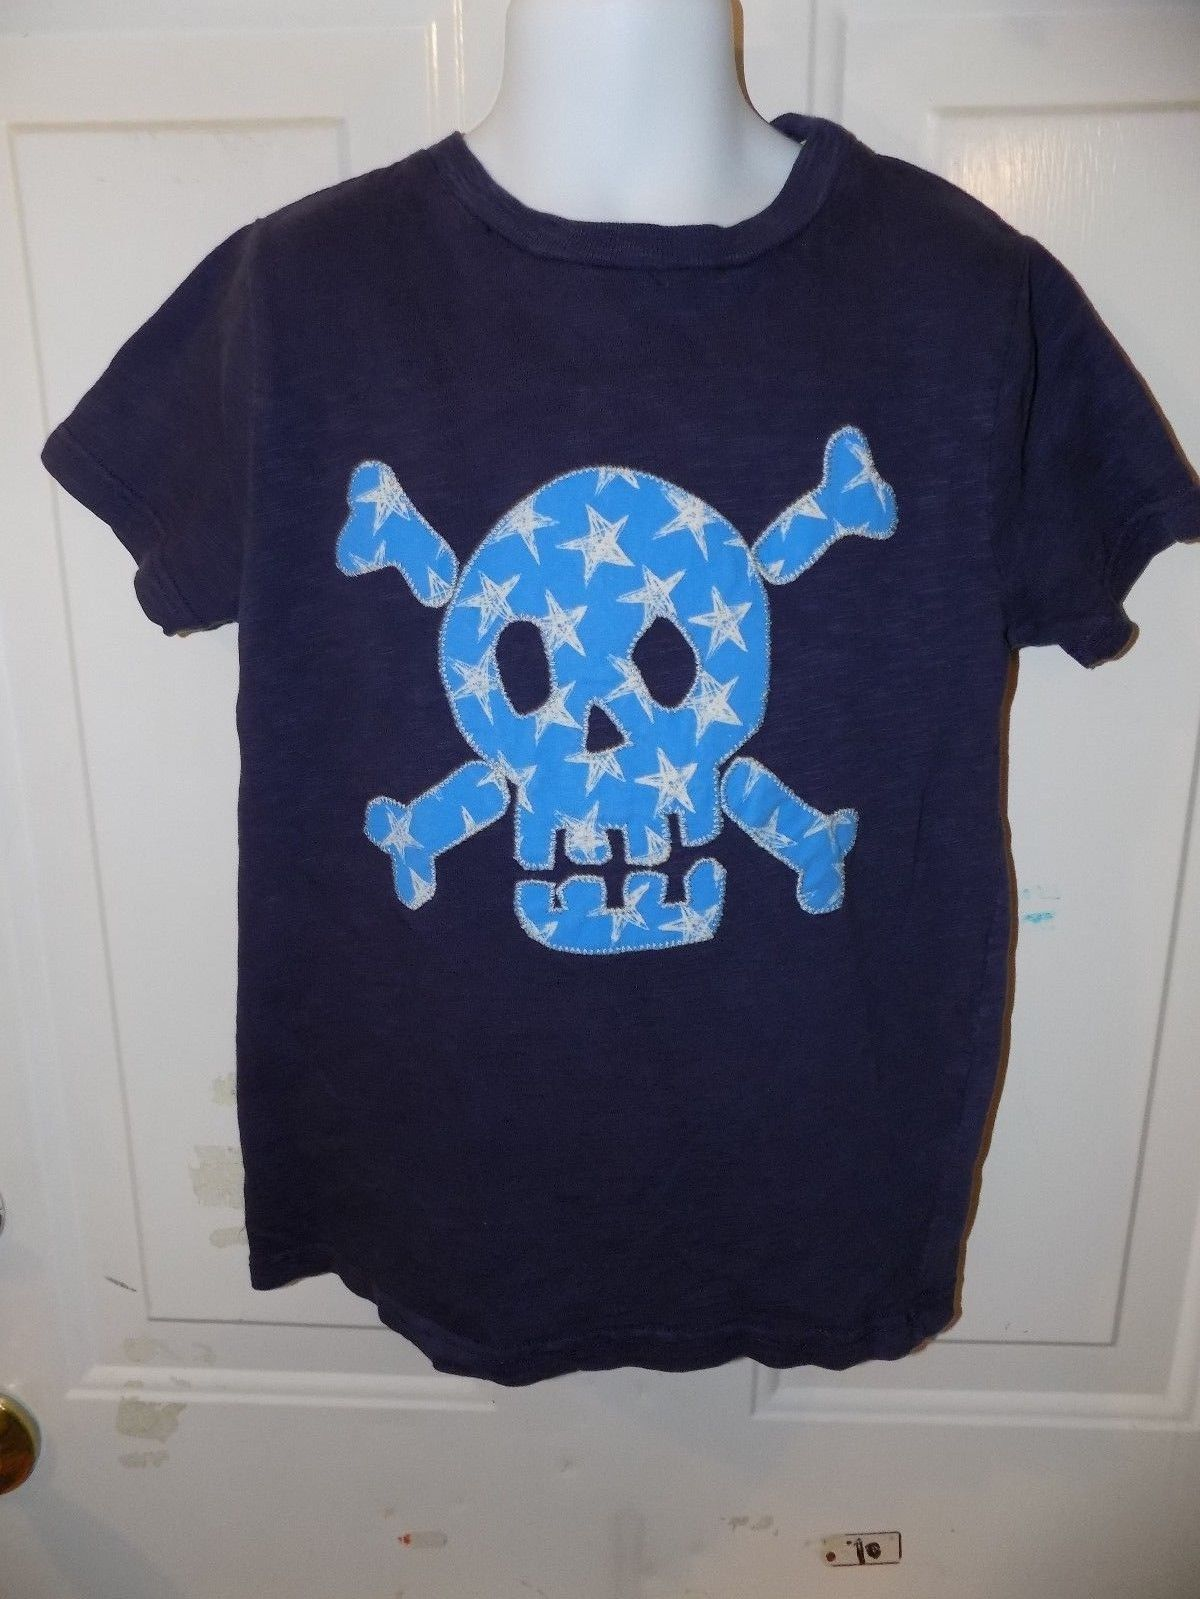 Primary image for MINI BODEN Skull + Crossbones BIG APPLIQUE T-SHIRT SIZE 6/7Y BOY'S EUC